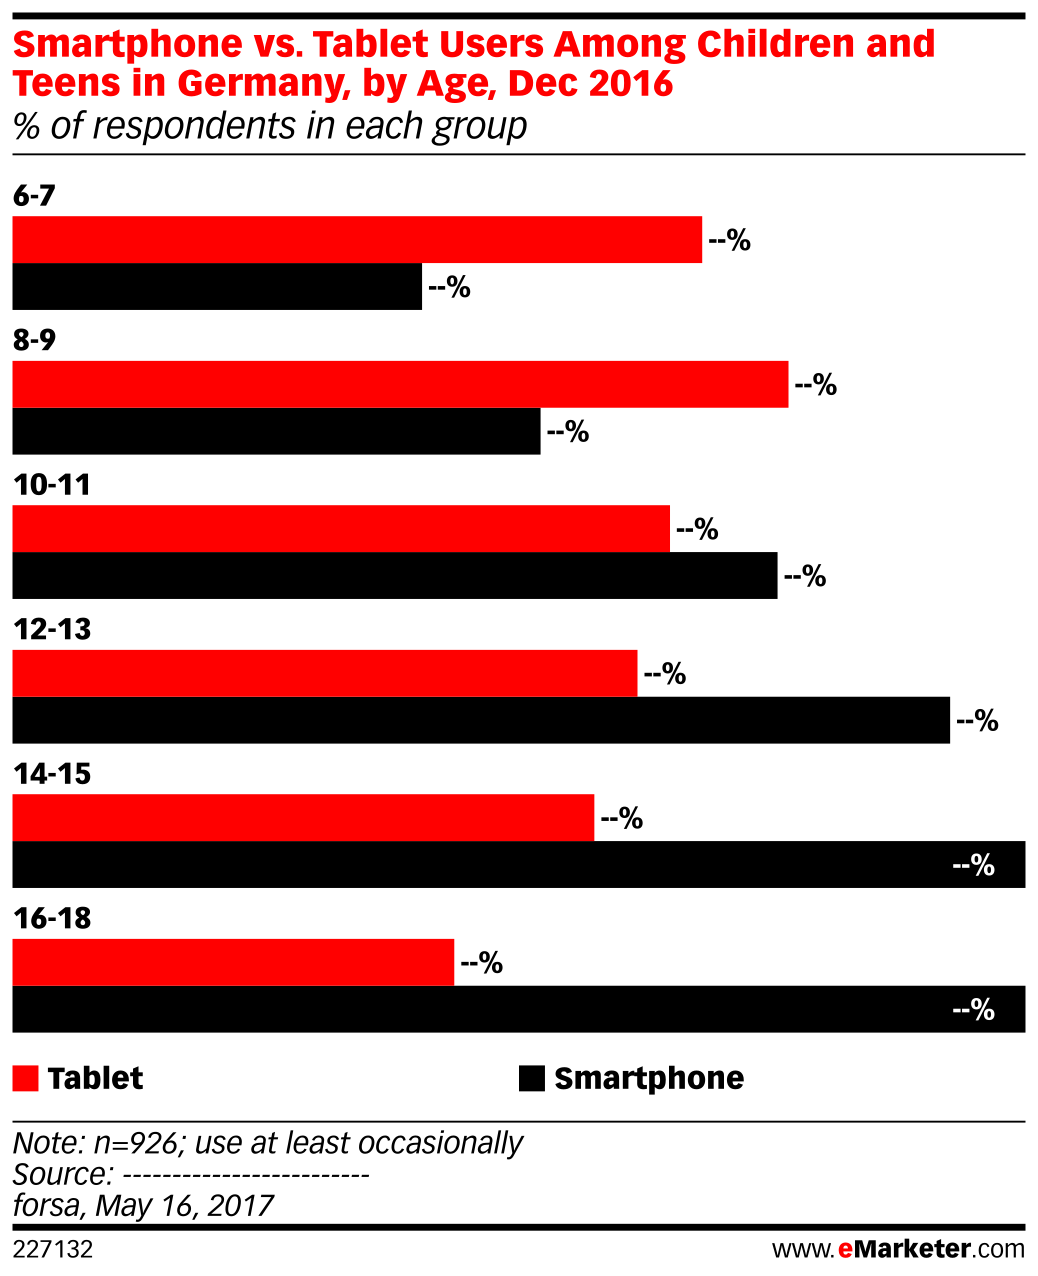 Smartphone vs. Tablet Users Among Children and Teens in Germany, by Age, Dec 2016 (% of respondents in each group)